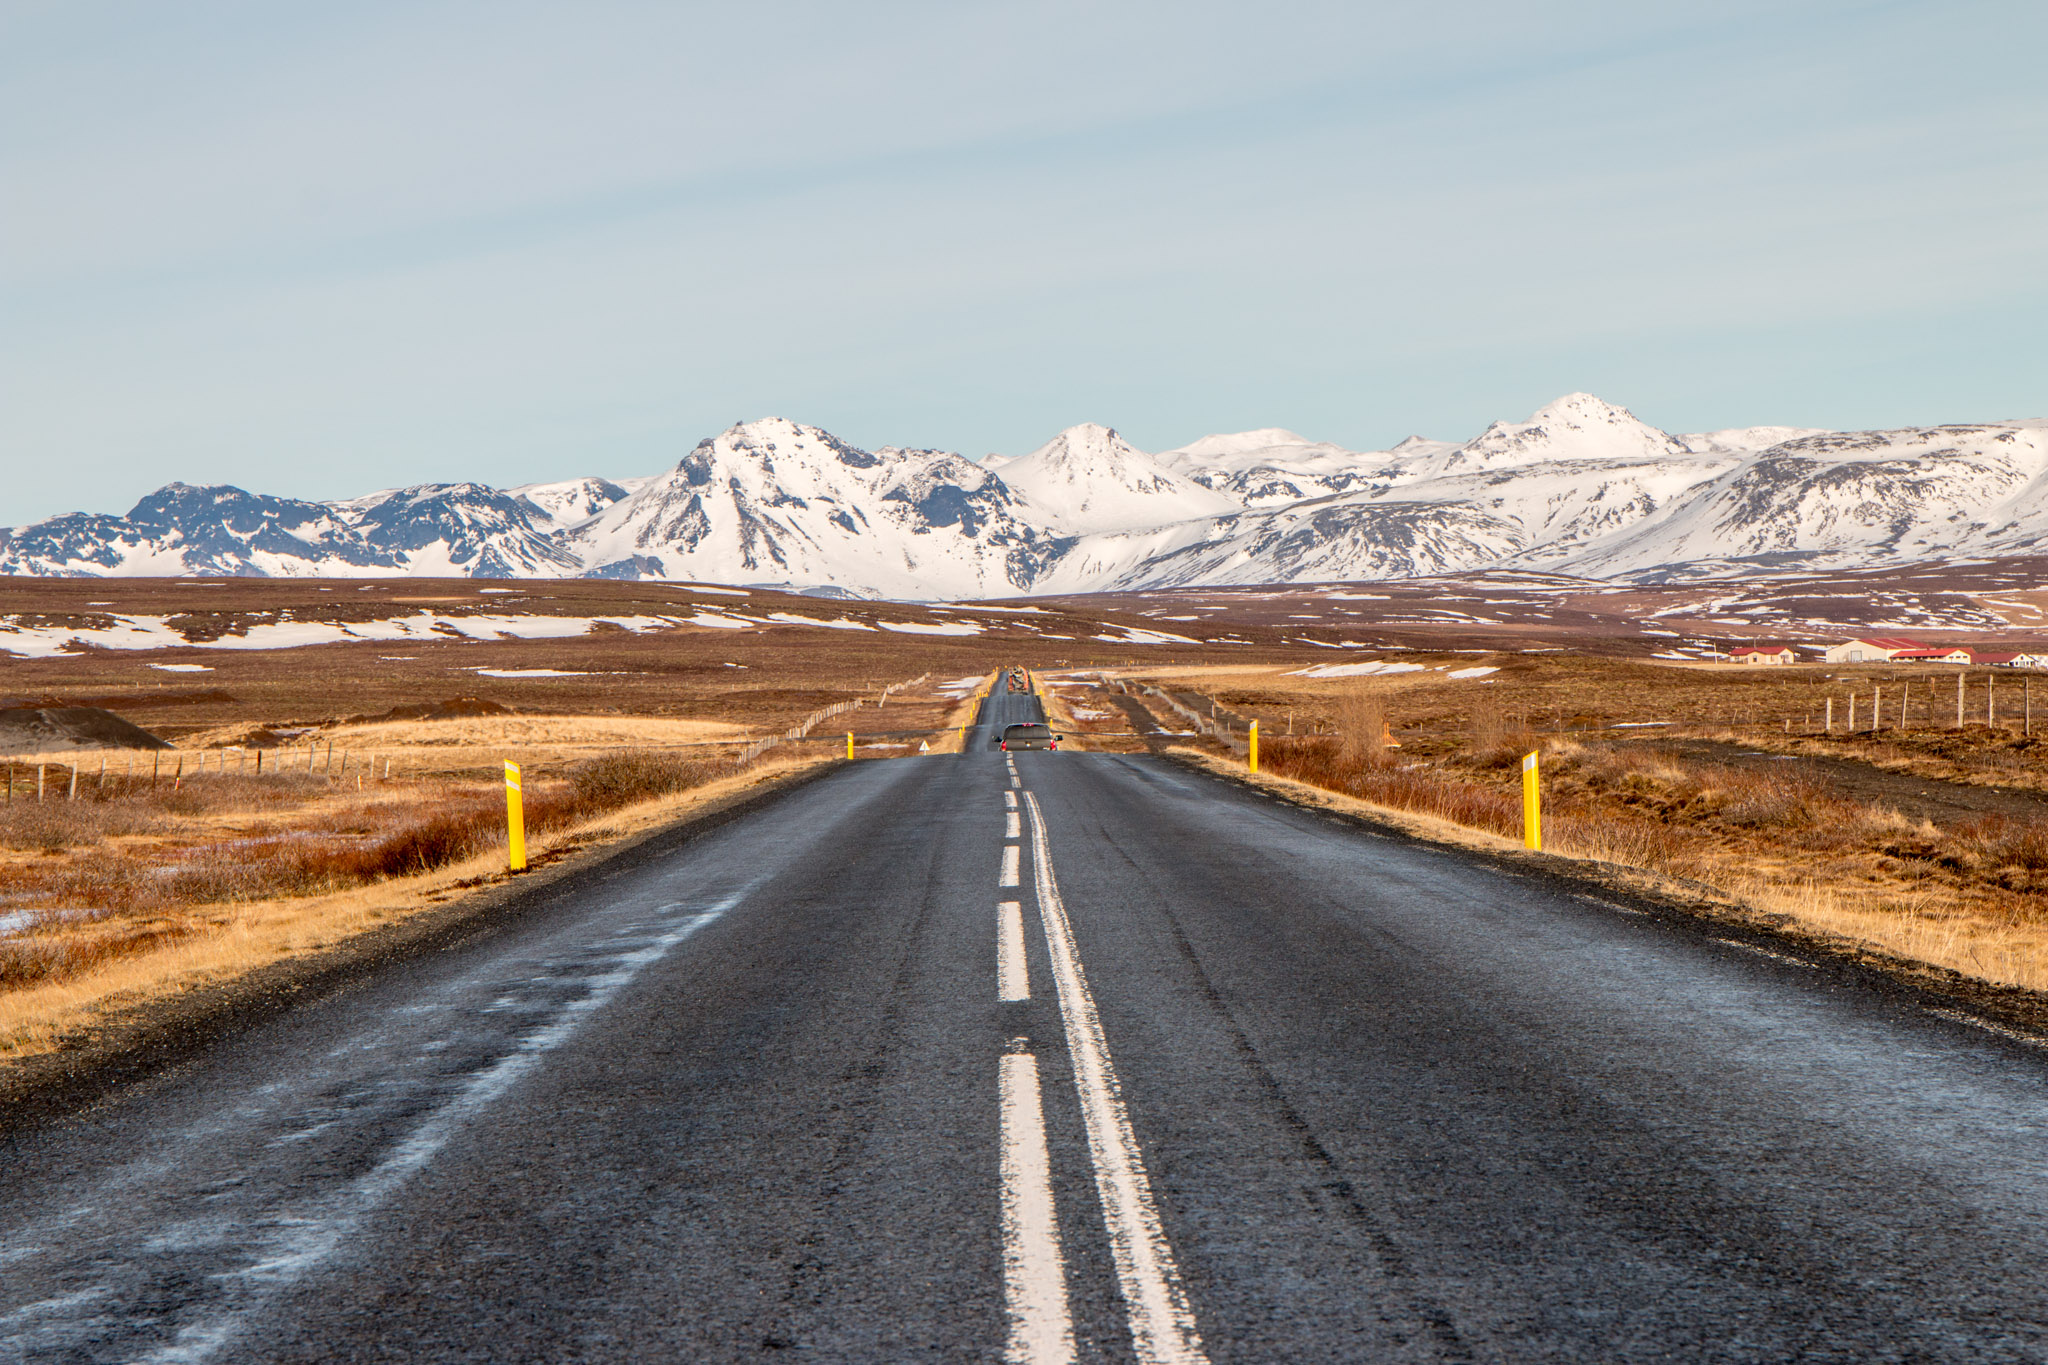 Iceland road trip: The ultimate guide - Breathe With Us on iceland ring road length, iceland black population, golden circle reykjavik map, reykjavik tourist map, iceland points of interest maps, iceland ring road bridge, pacific coast highway 1 california map, iceland daylight chart, iceland tours, iceland itinerary, iceland road trip, iceland scenery, greenland road map, iceland stocks, west iceland road map, confederate states of america map, iceland scenic views, iceland f roads, iceland tourism, western canada map,